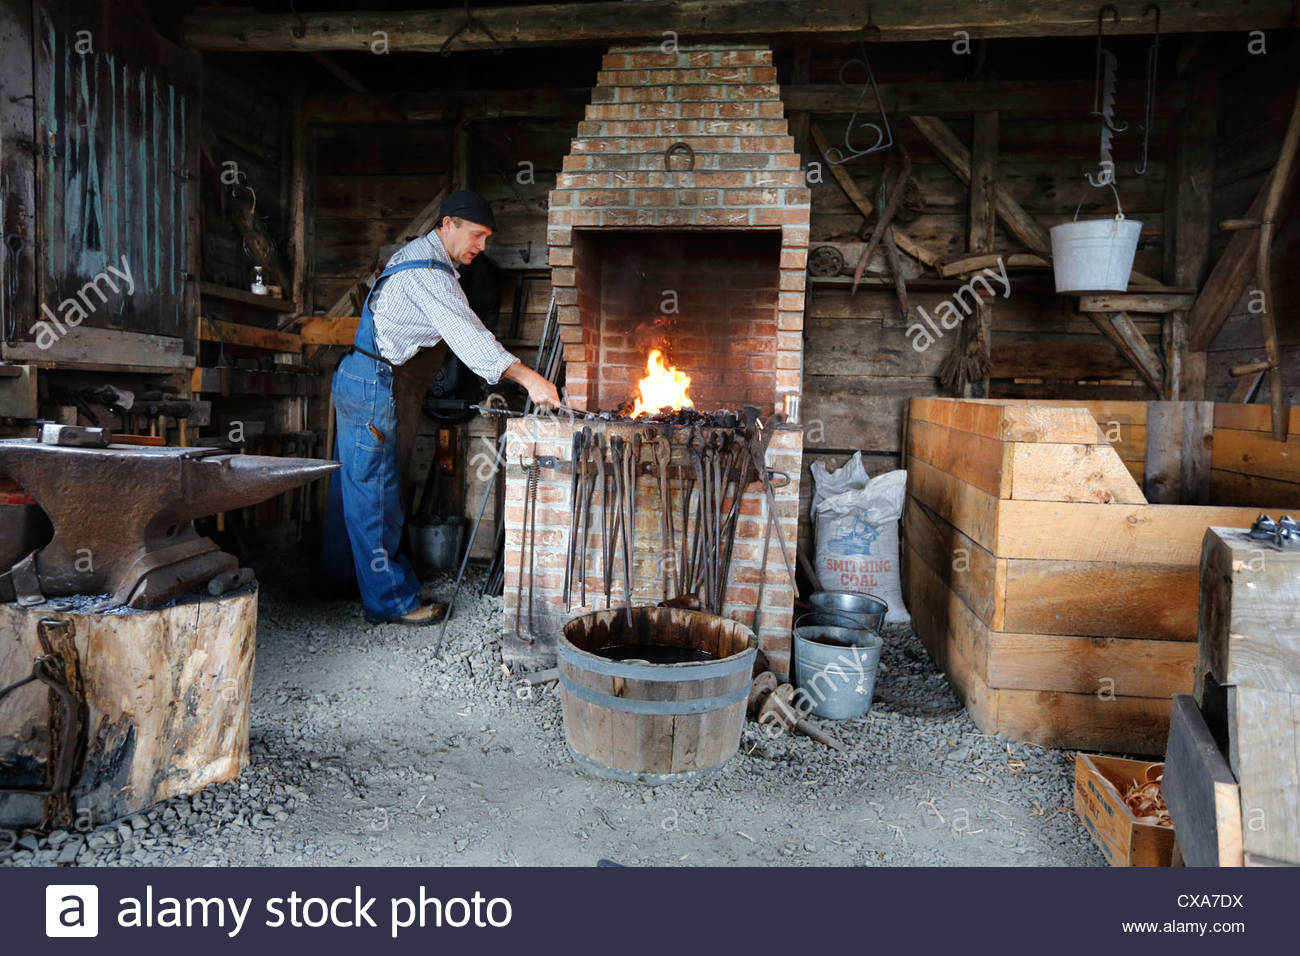 Cathedral of the Incarnation Long Island, The Village Blacksmith Stock Photos & The Village Blacksmith Stock ...